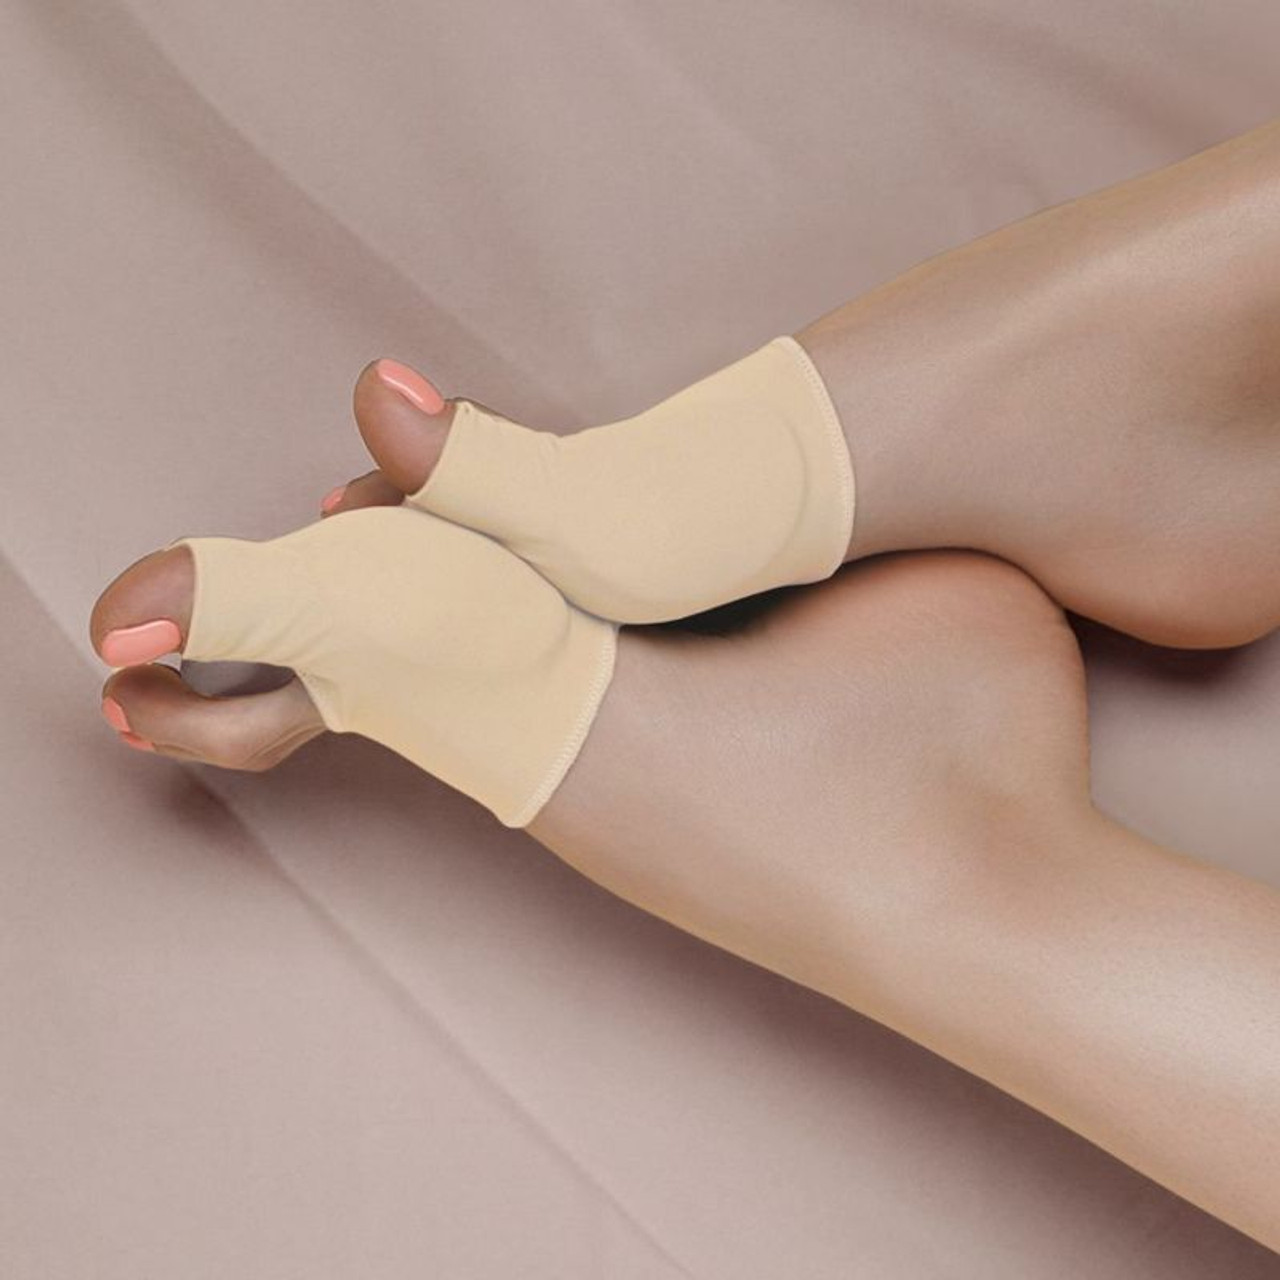 Orthopedic Gel-Infused Bunion Protector and Pain-Relief Detoxing Sleeve - 1 Pair